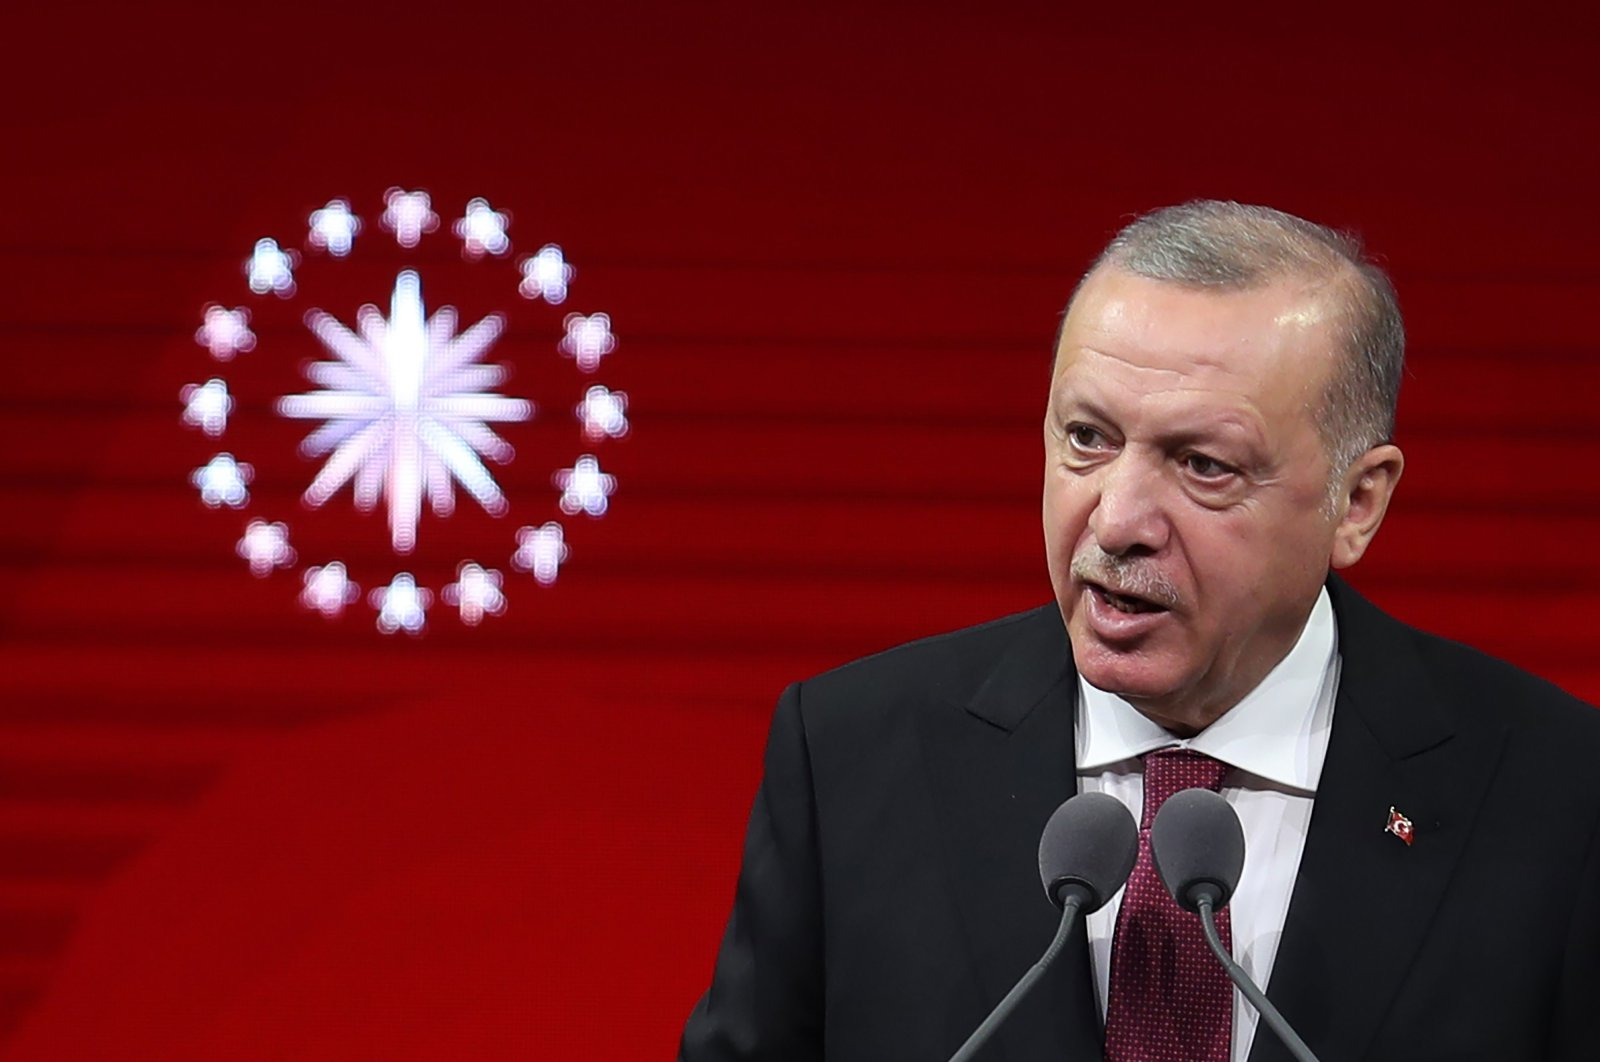 President Recep Tayyip Erdoğan speaks during the State Medal of Commendation Ceremony at Beştepe National Congress and Culture Center in the capital Ankara, Sept. 17, 2020. (AFP)